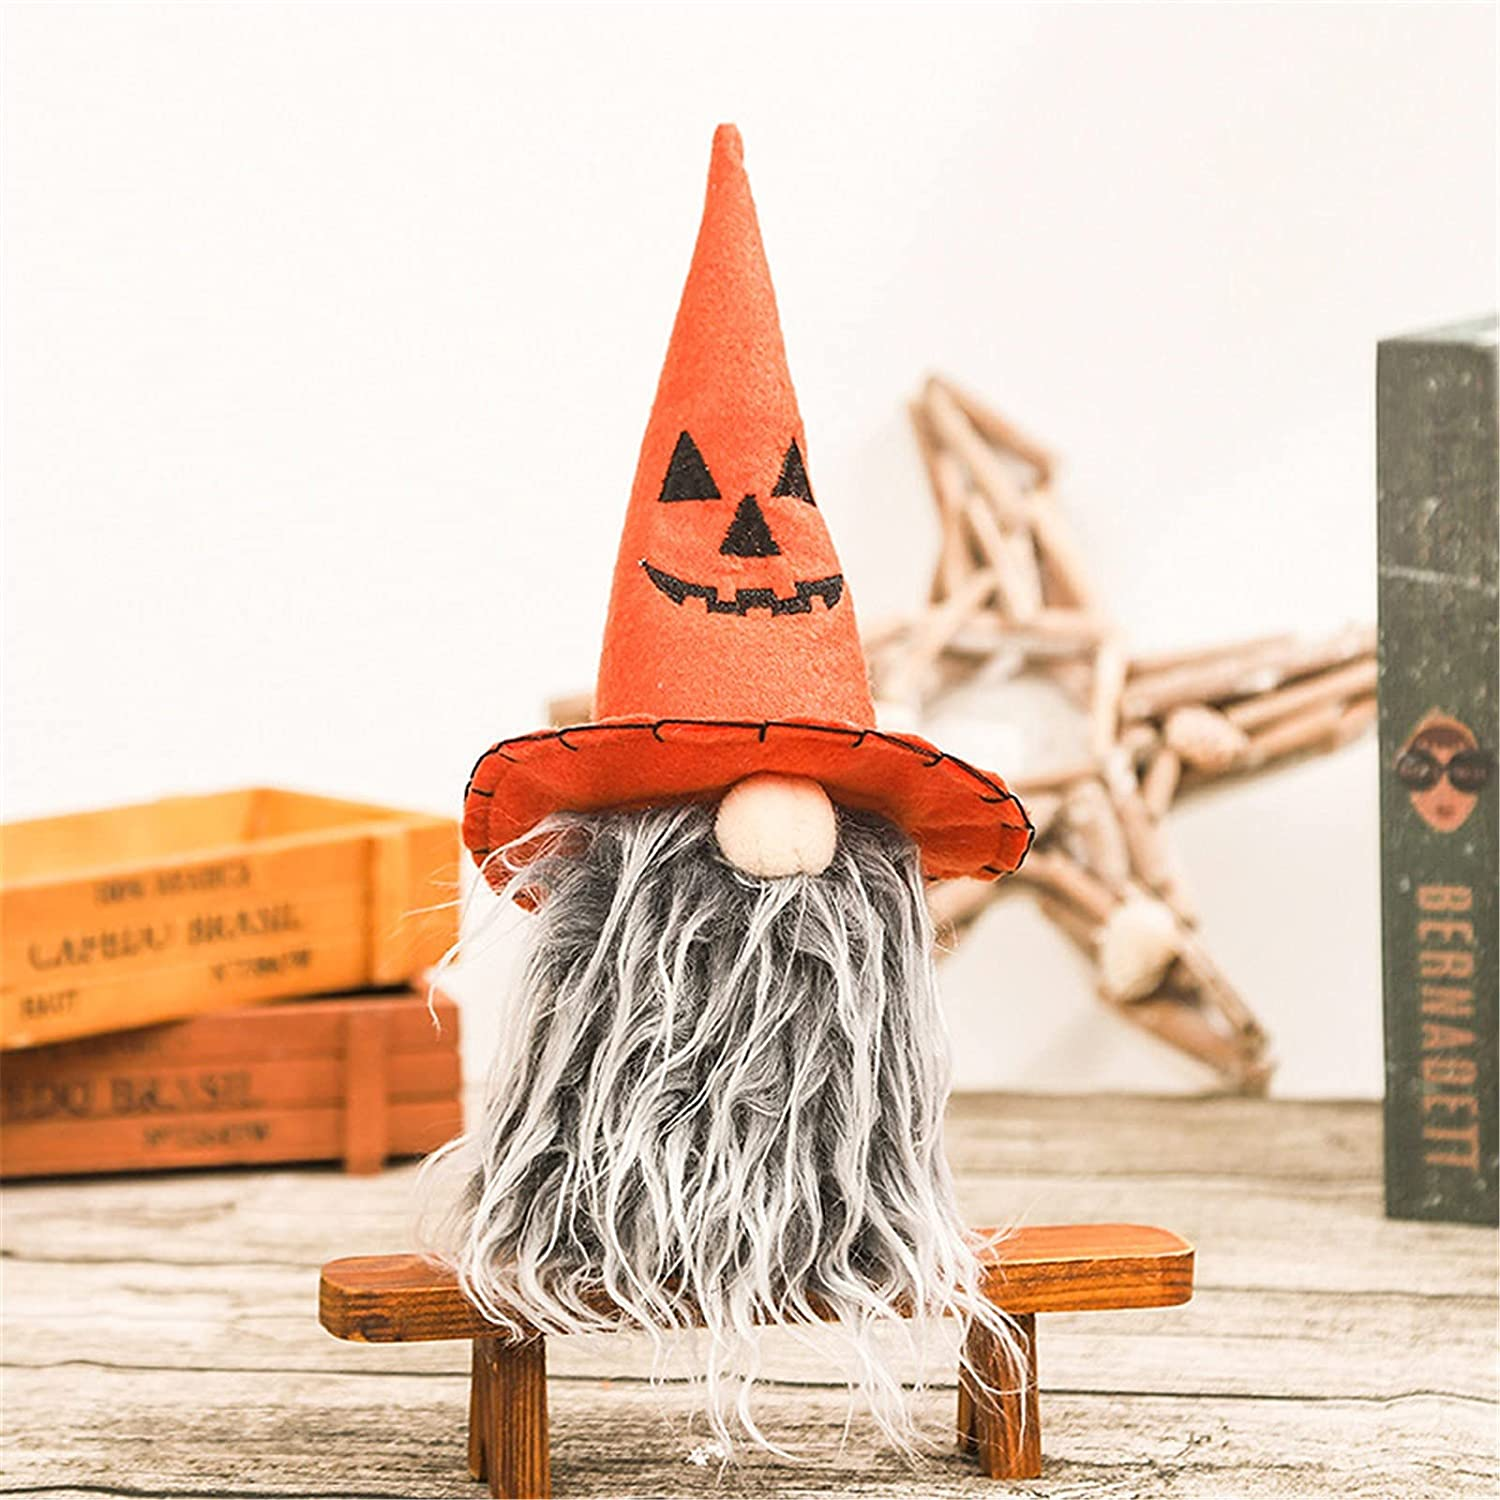 OLOPE Daily bargain sale Halloween Gnome Plush Decoration Handmade To Faceless Doll Sale special price